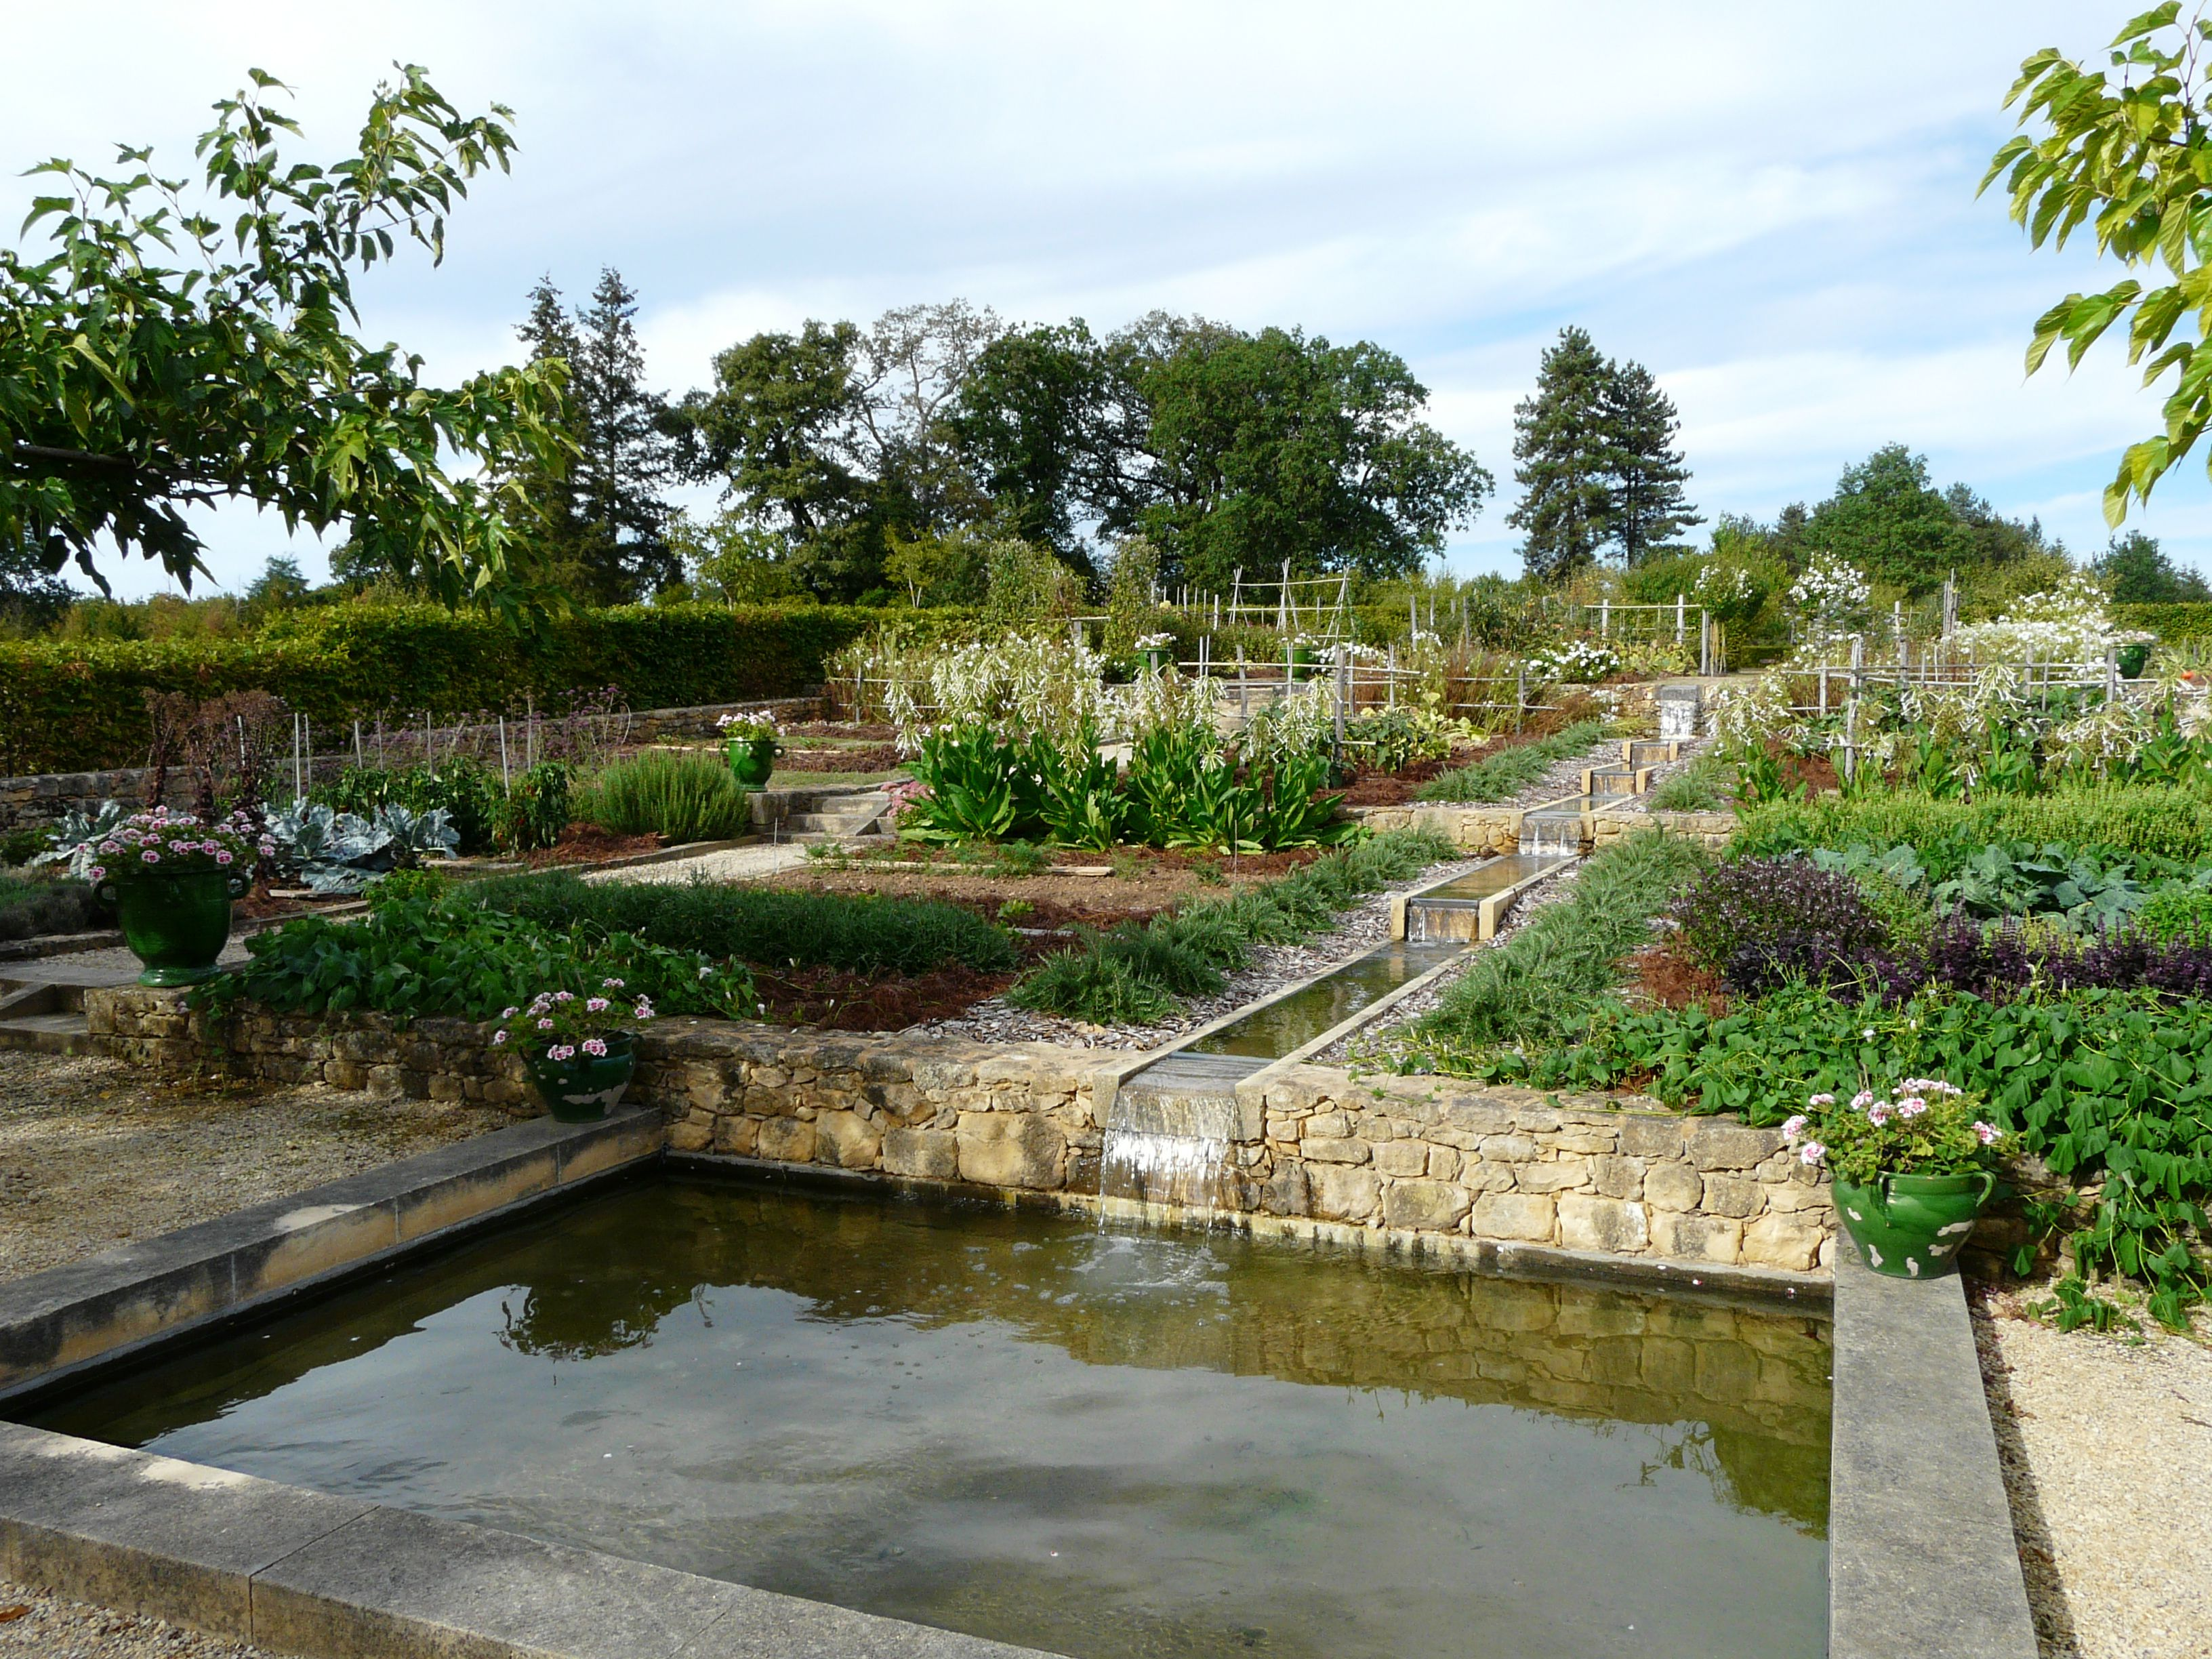 Landscape Architecture Pictures how to present architecture project - google search | garden ideas